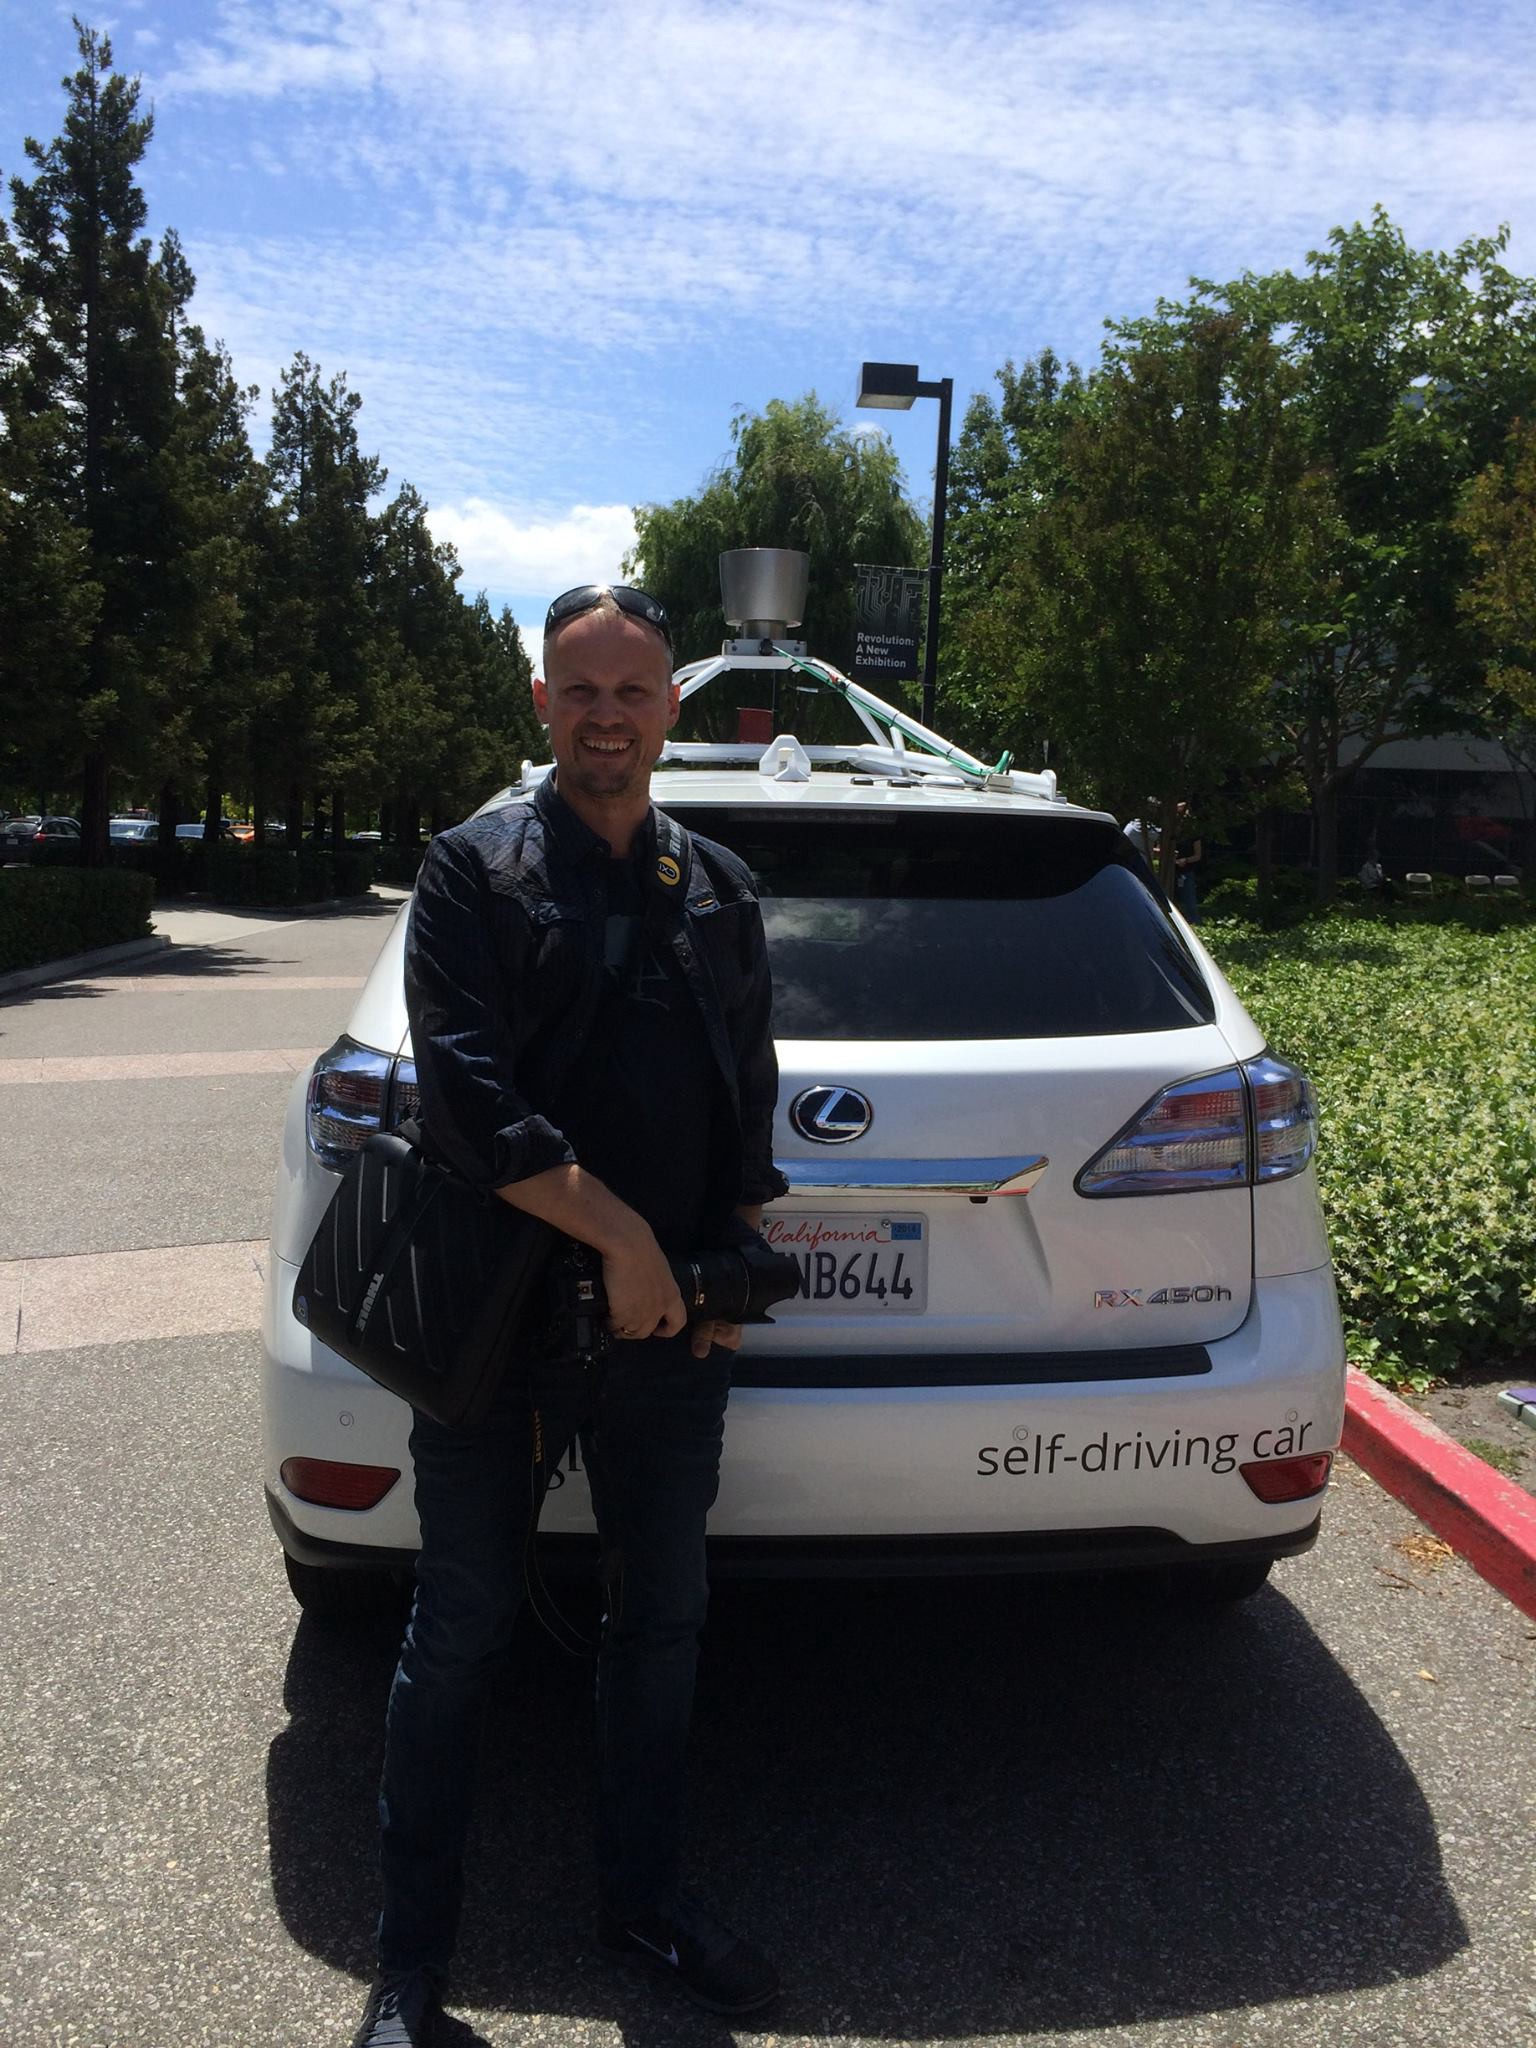 Testing the Google slef-driving car - 15th of December 2014